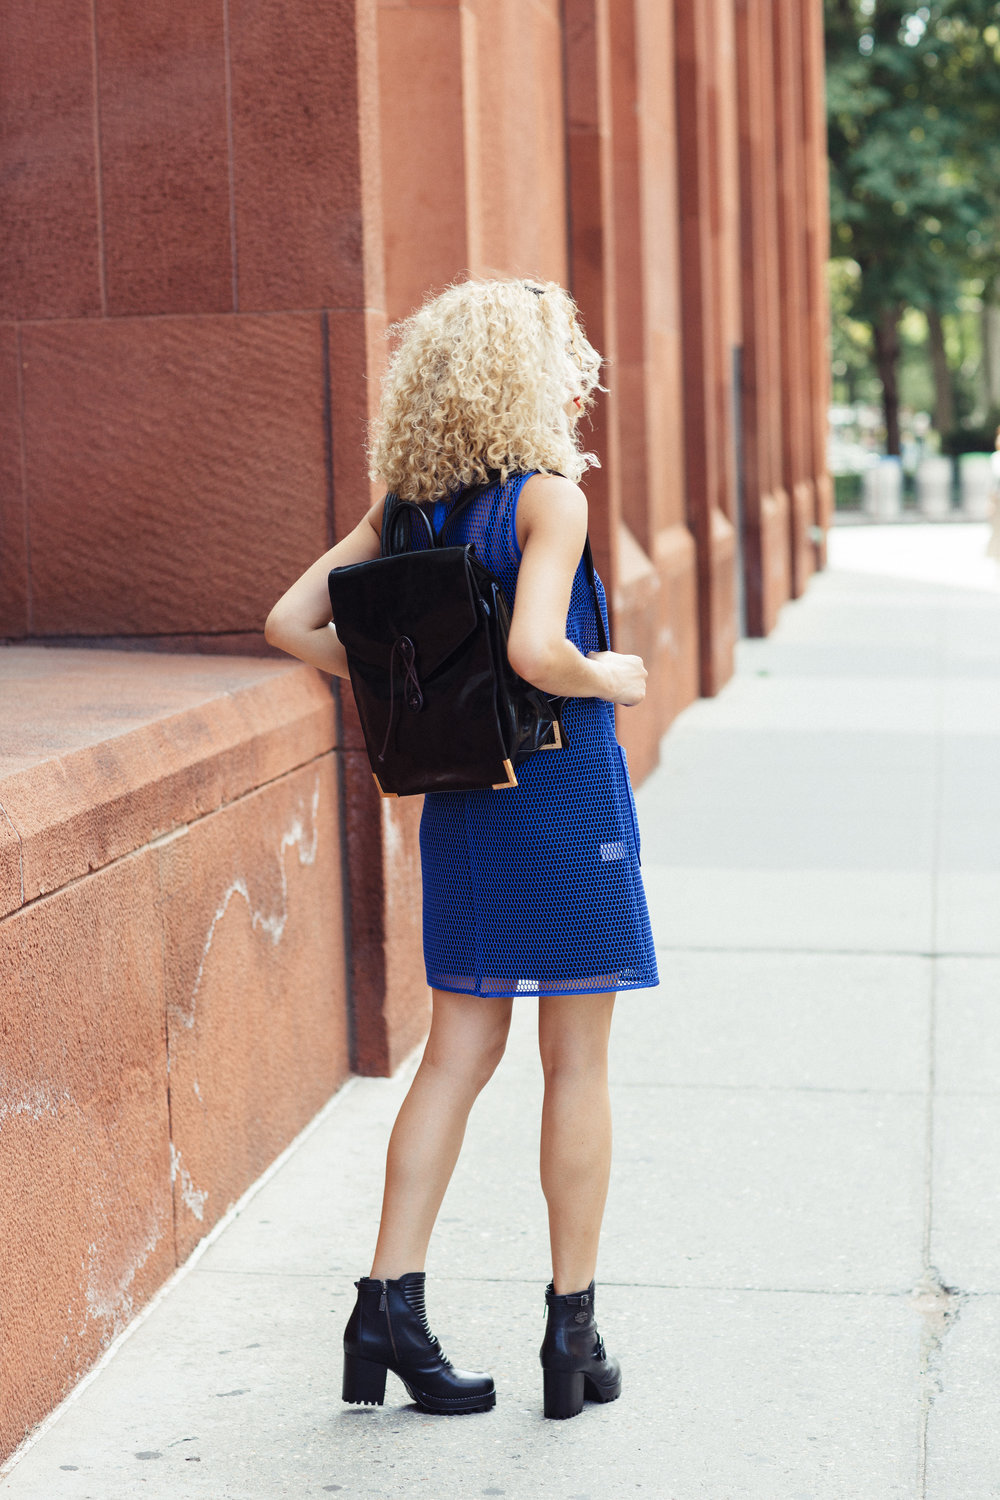 blue-dress-outfits-blonde-curly-hair.jpg